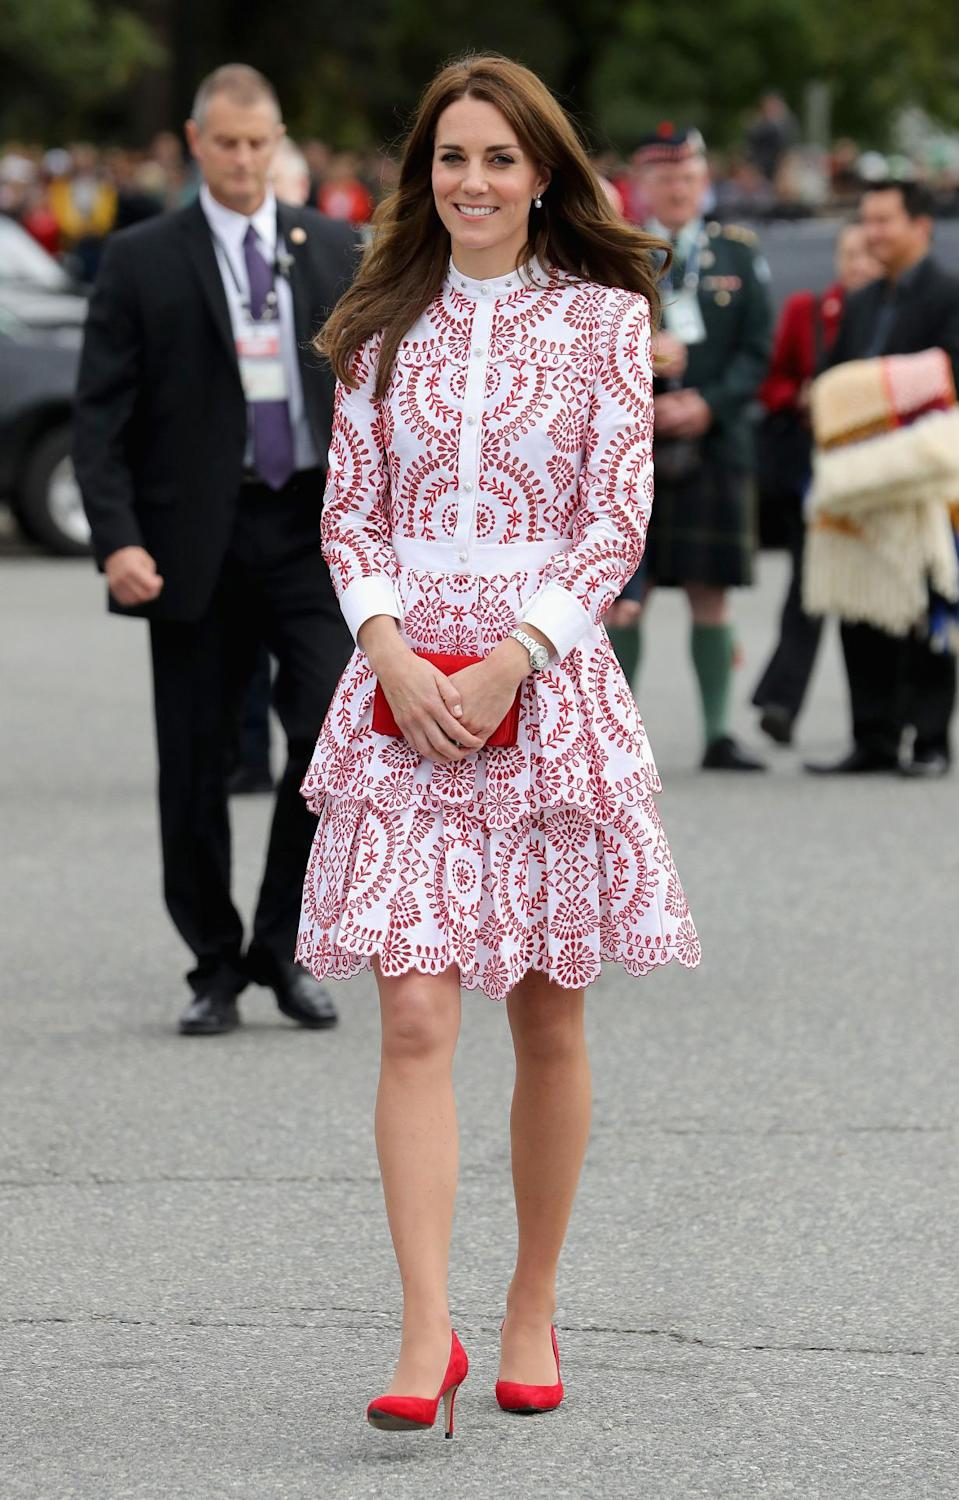 <p>The Duchess donned a bespoke red-and-white Alexander McQueen dress for a day in Vancouver. A matching Miu Miu bag and red suede heels topped off the look.</p><p><i>[Photo: PA]</i> </p>